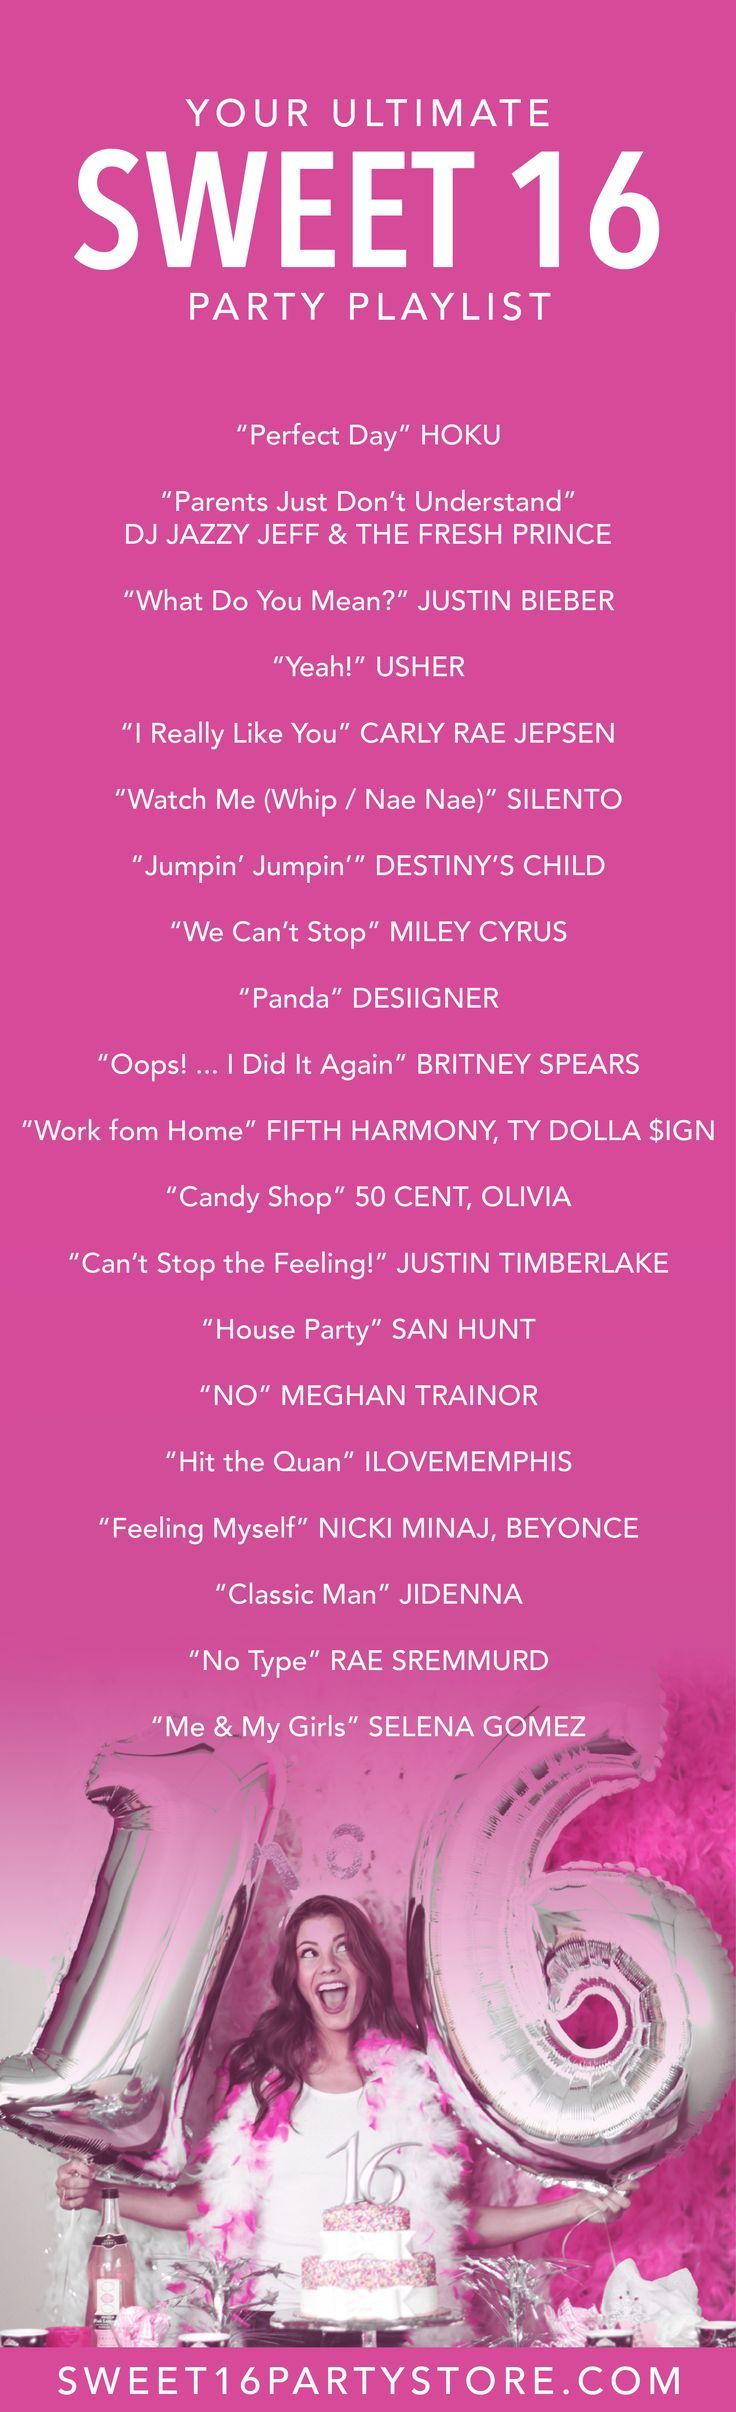 The Ultimate Sweet 16 Party Playlist From